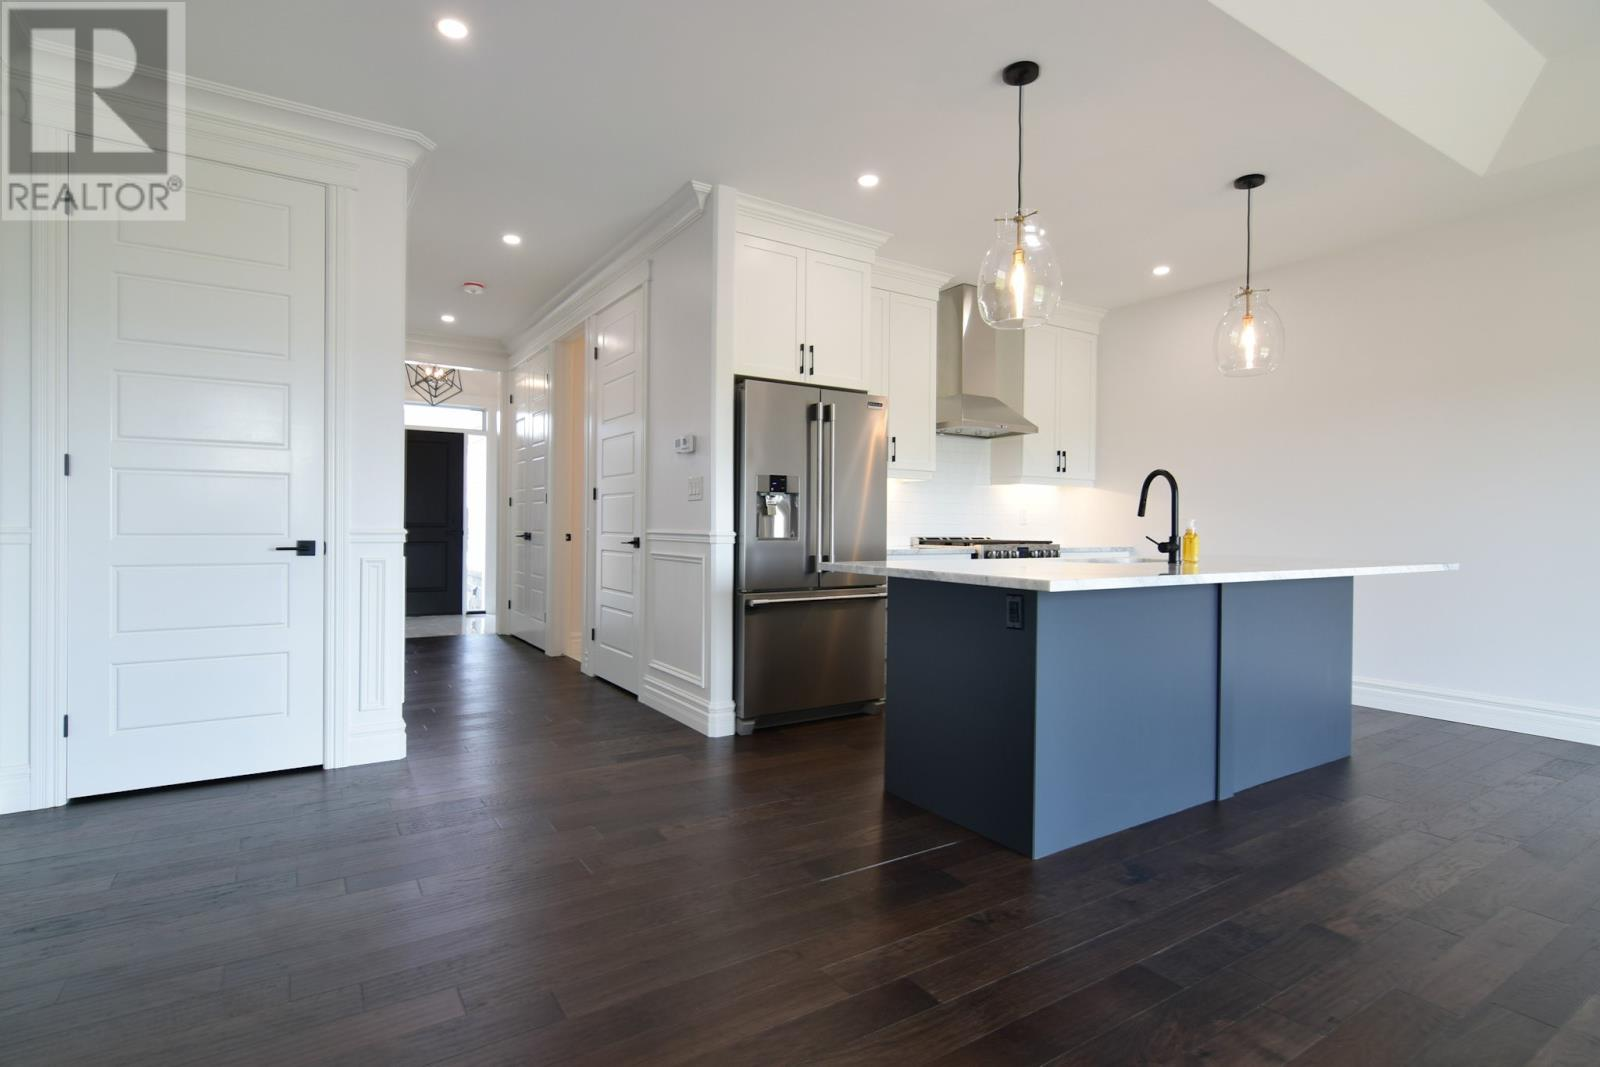 BRAND NEW STUNNING RANCH TOWNHOUSE IN LAKESHORE